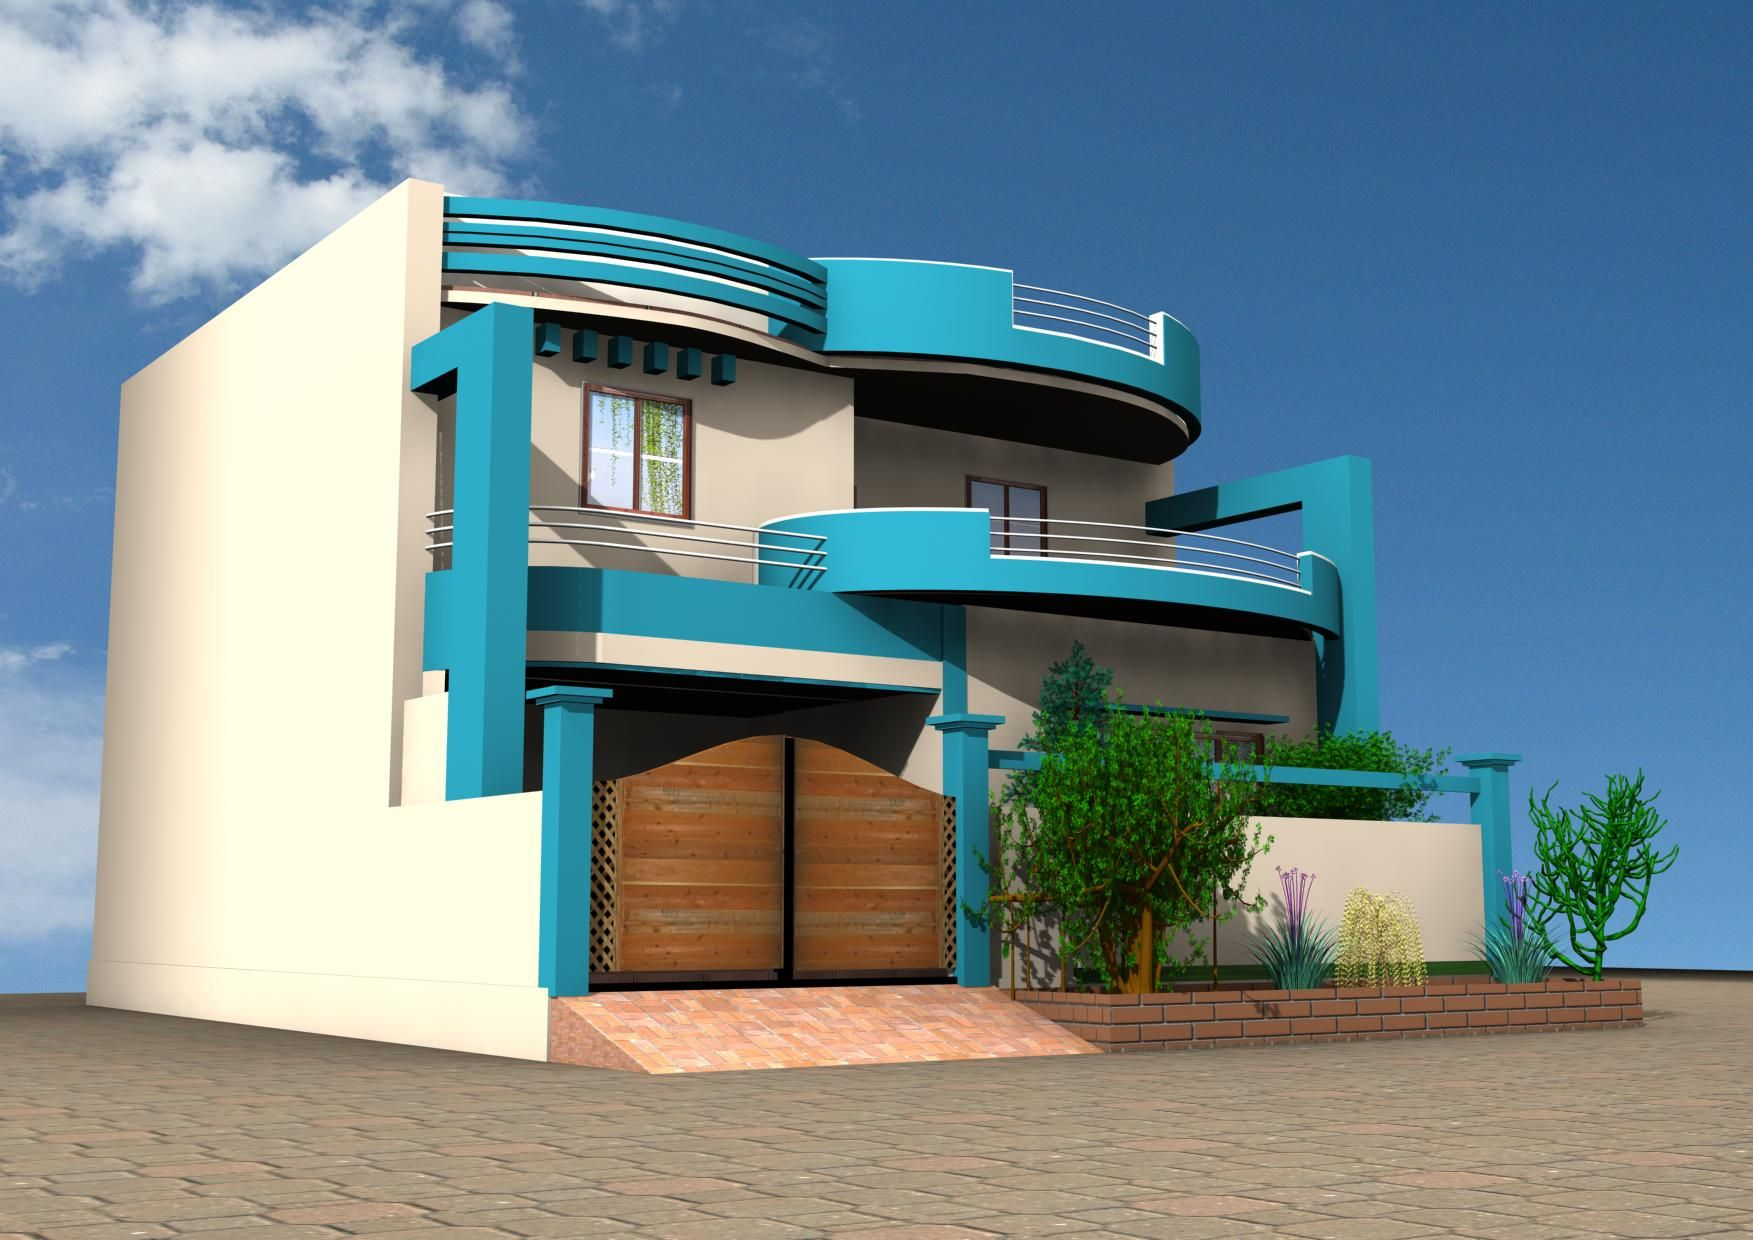 3d home design images hd 1080p for Modern house designs 3d